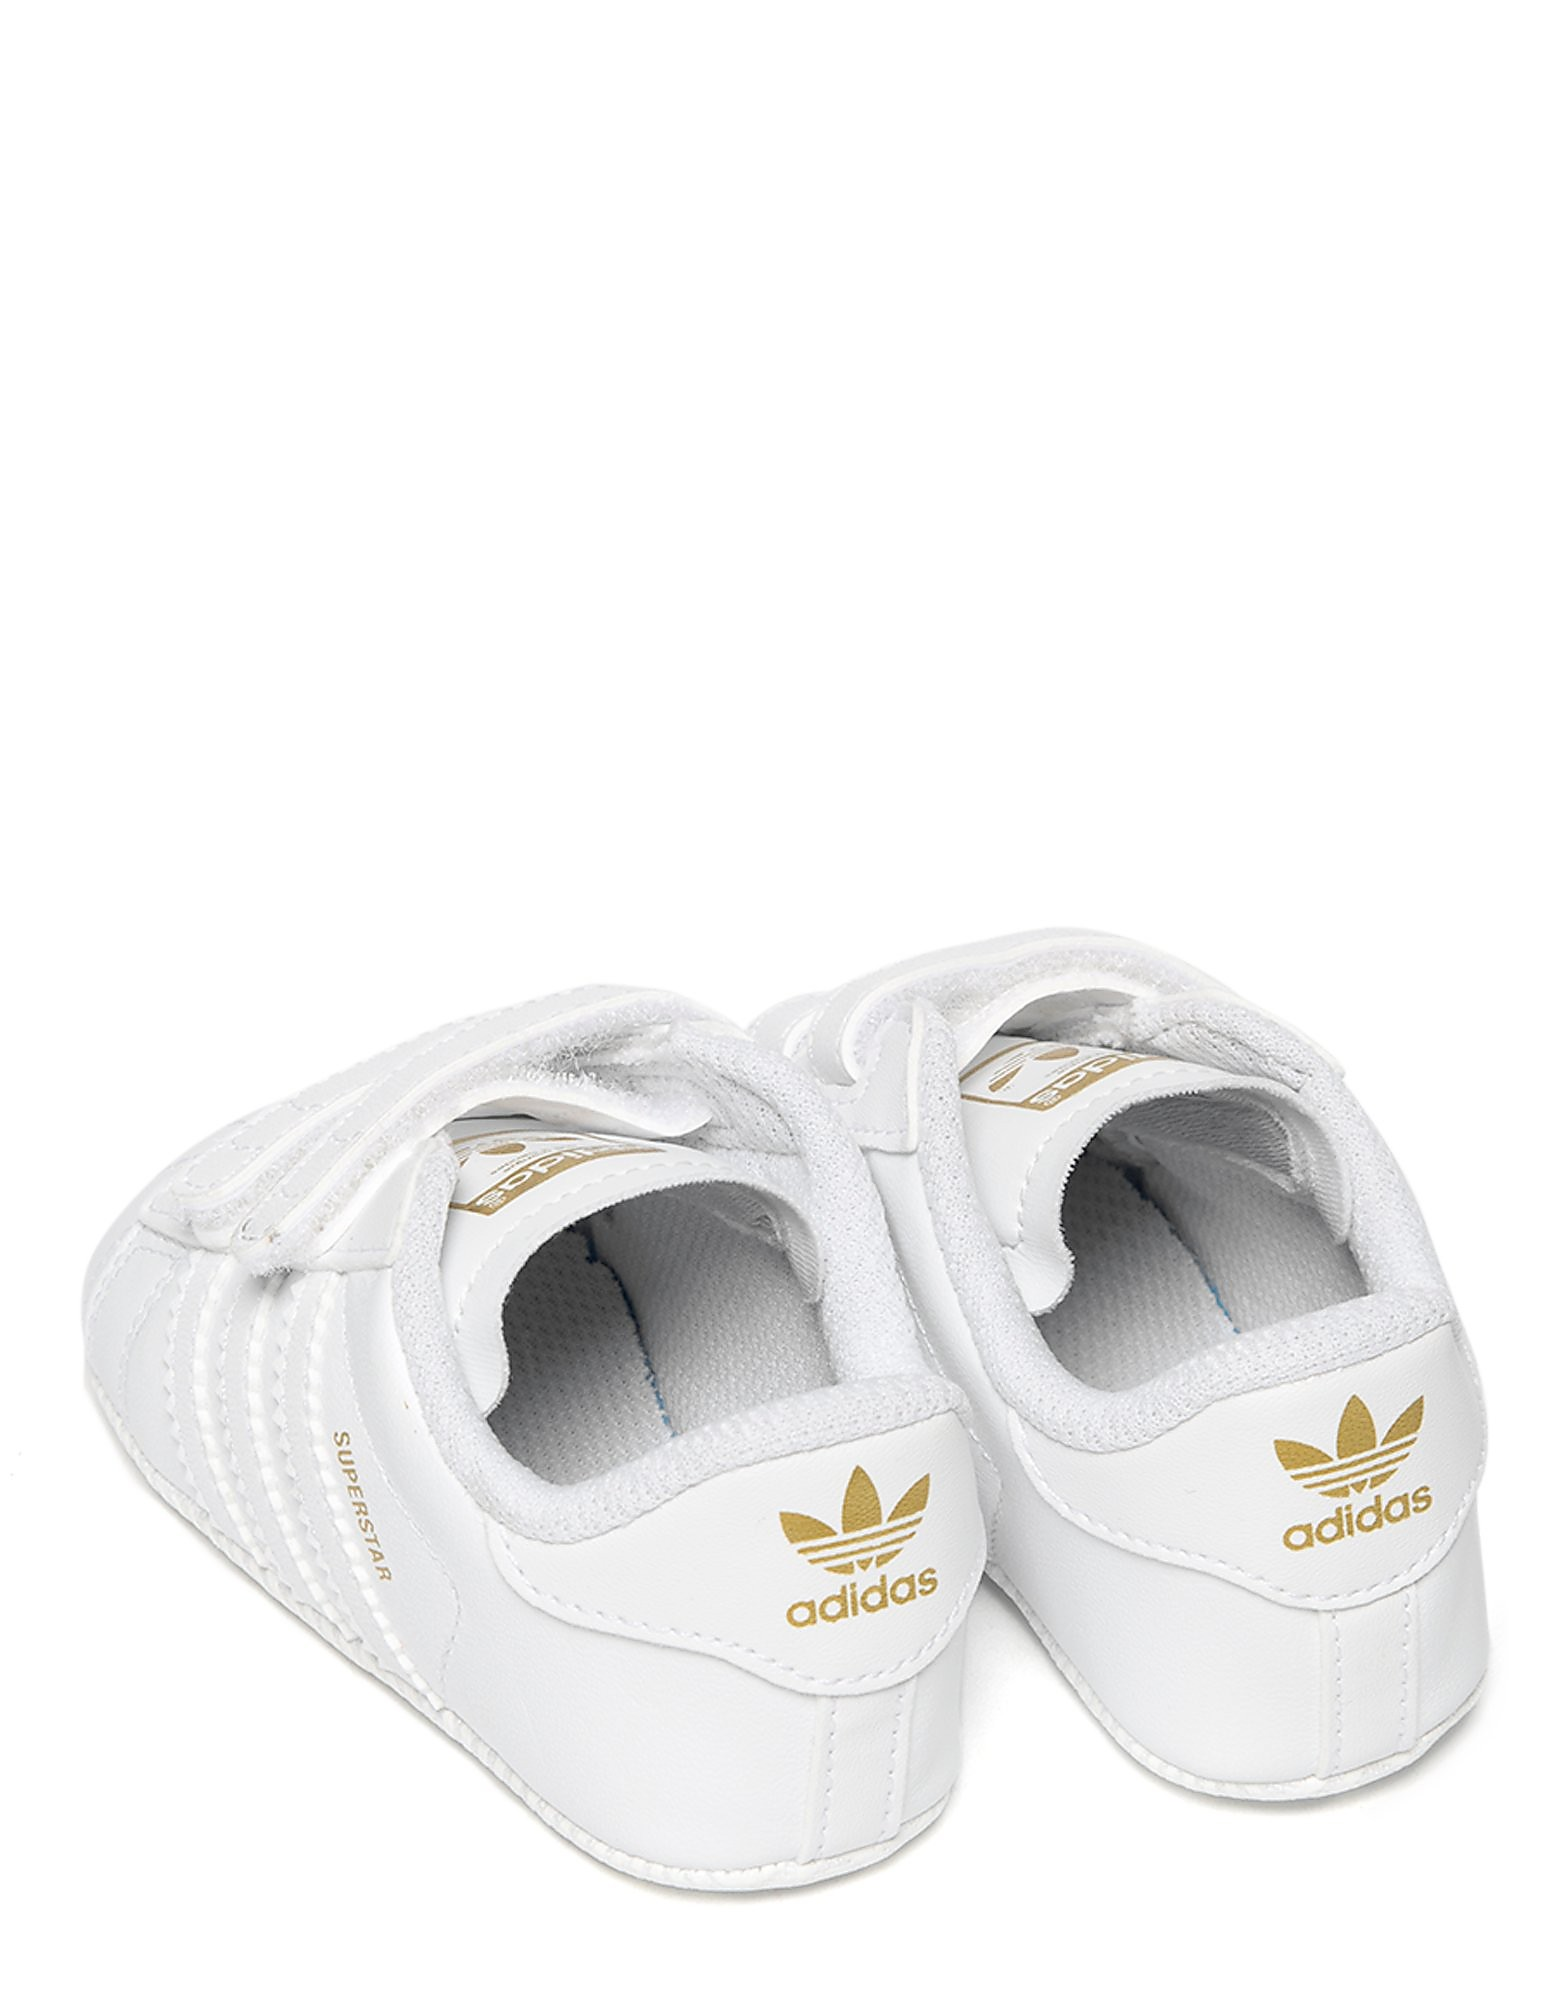 adidas Originals Superstar Crib för baby